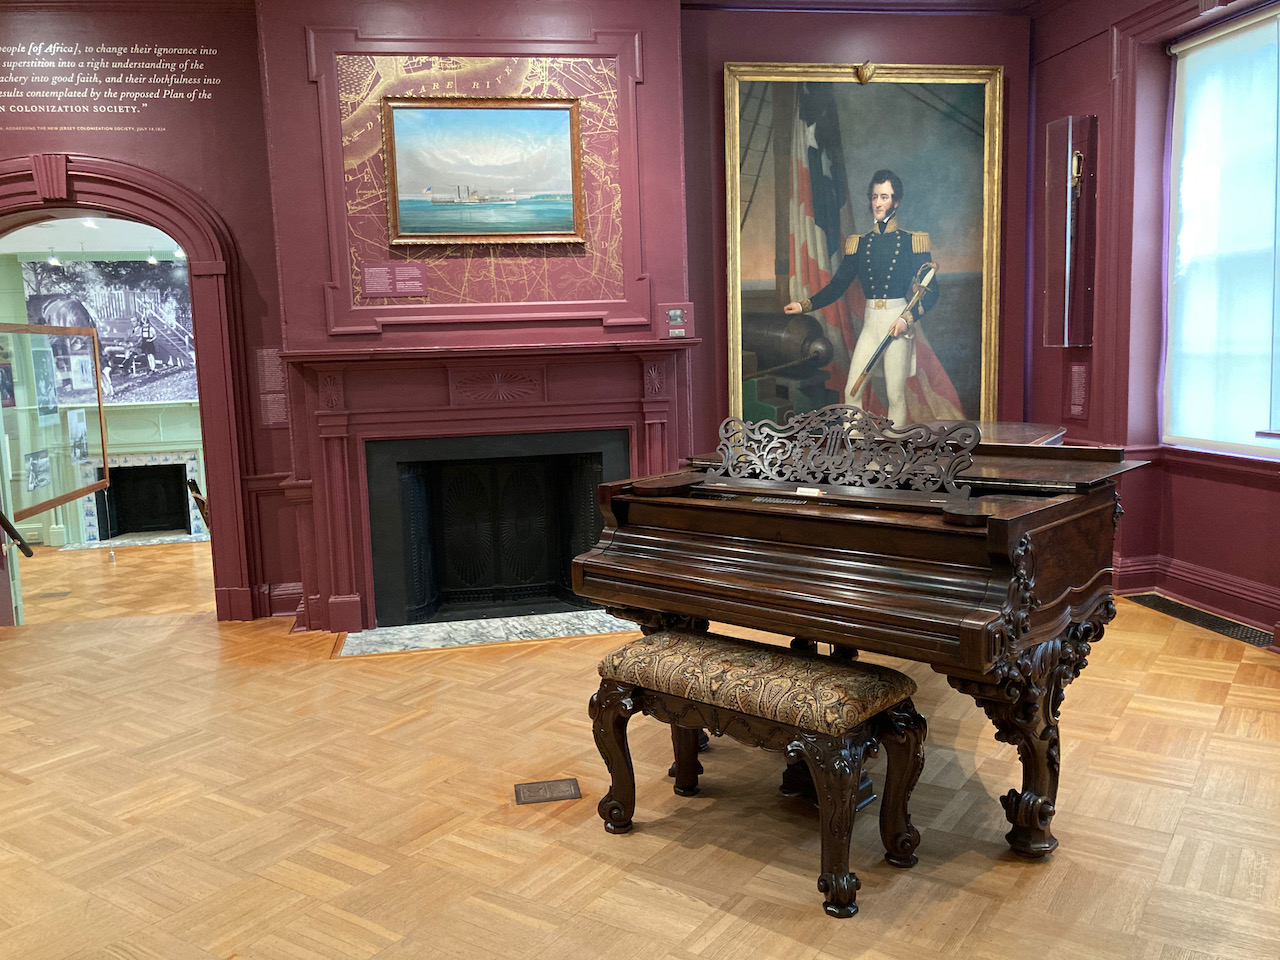 Room with grand piano and portrait of Robert Stockton.